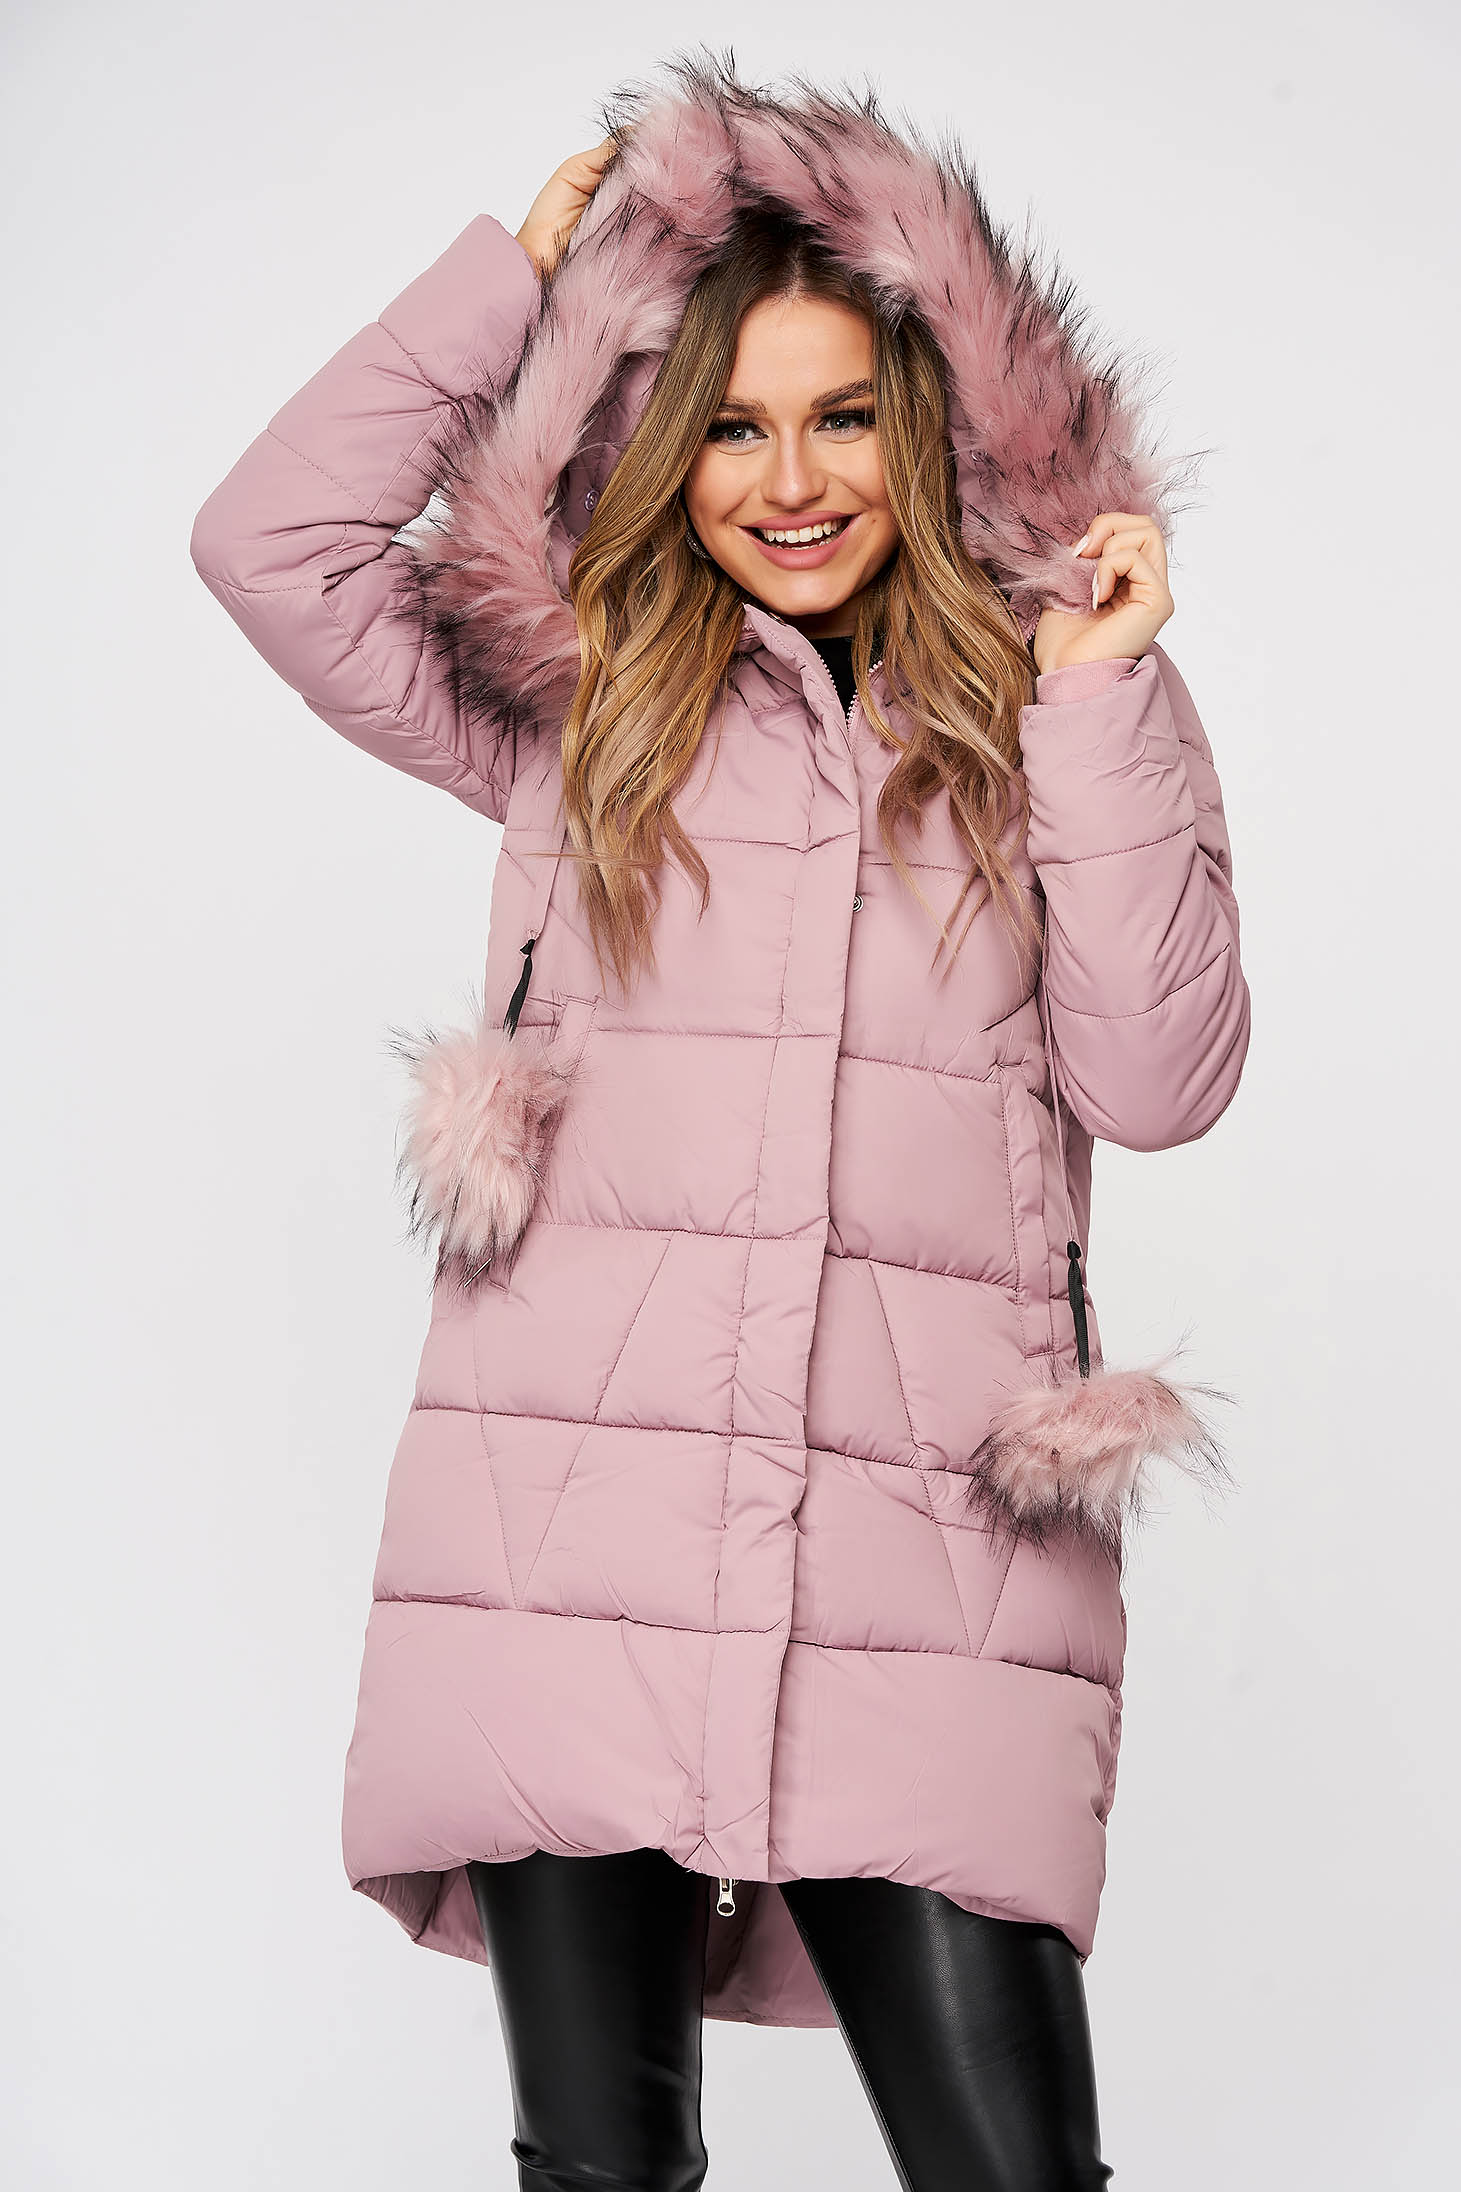 Jacket lightpink from slicker with furry hood with pockets long with tassels